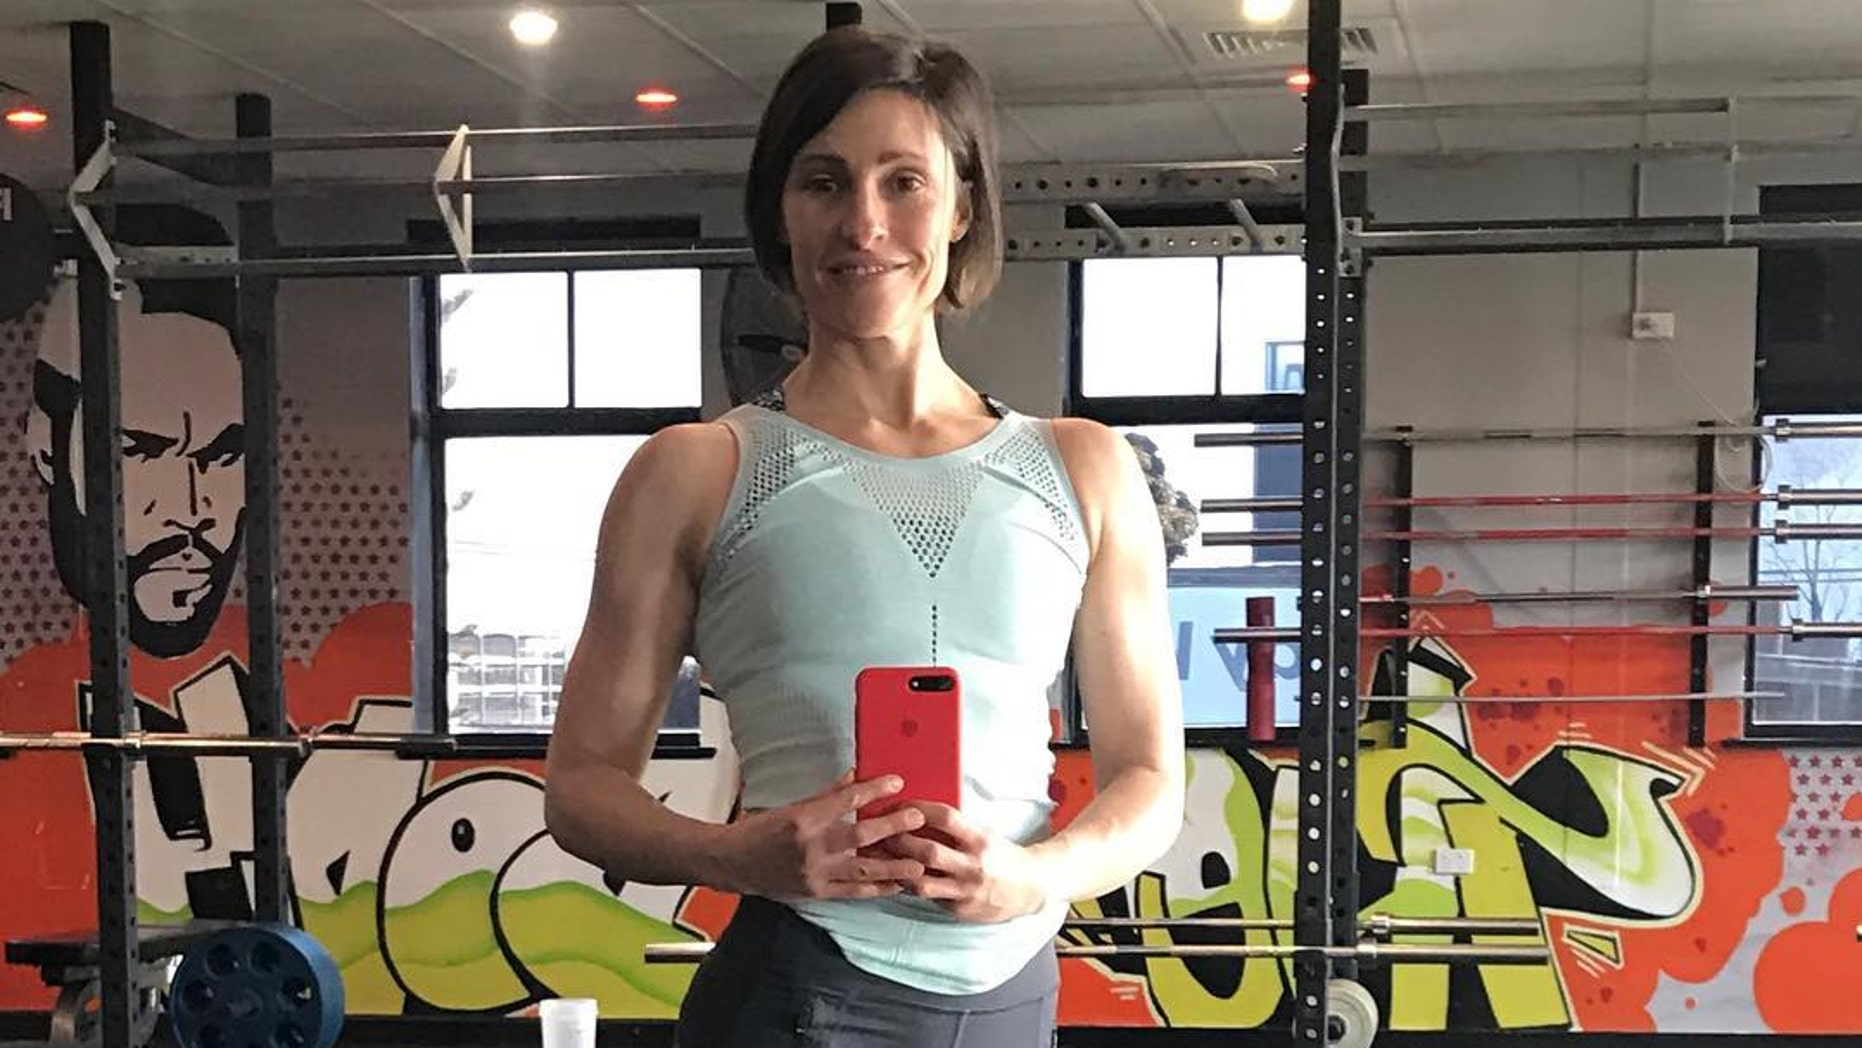 Liz Lllorente, a personal trainer from Australia, beat the record for most burpees in an hour over the weekend — or did she?